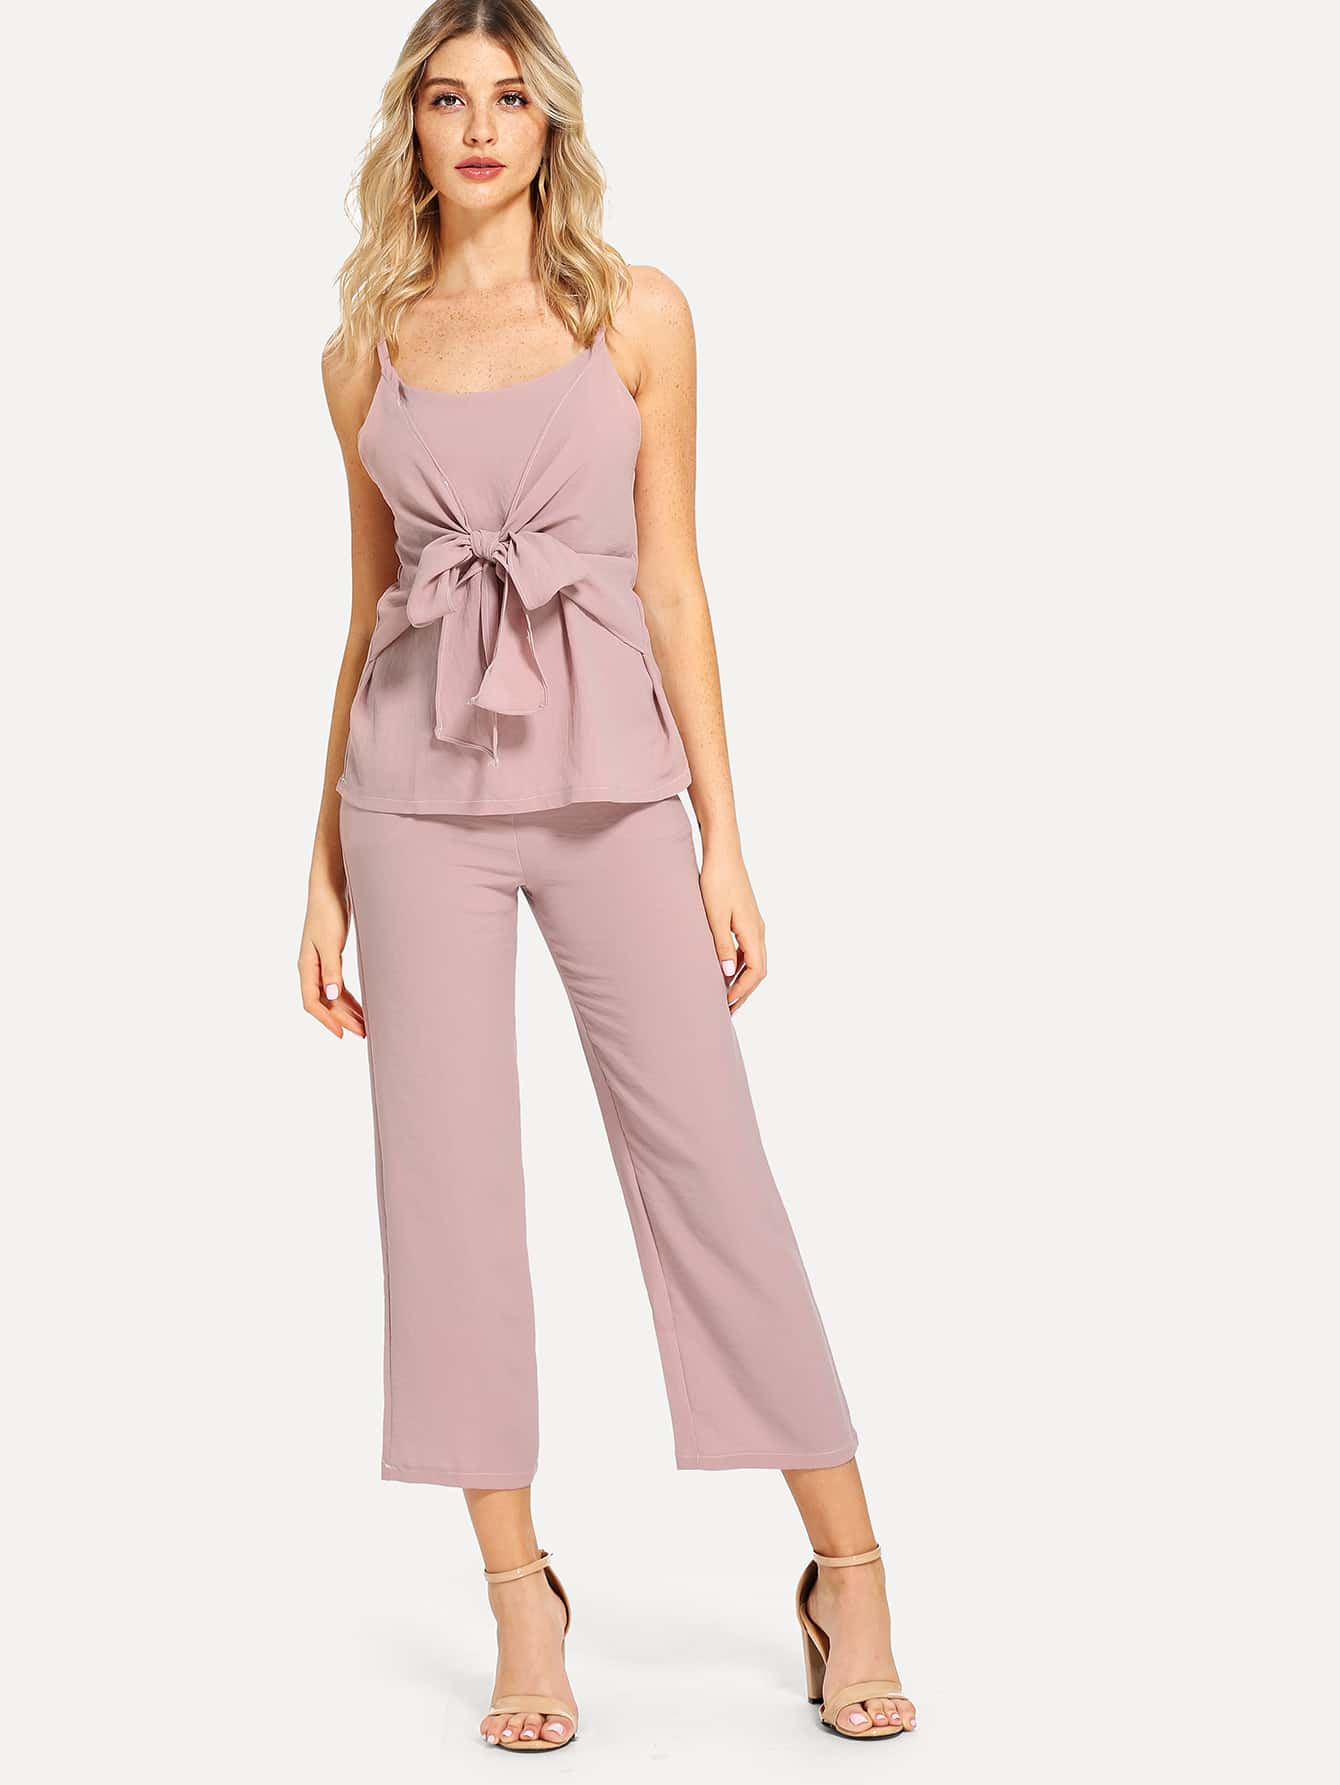 Bow Tie Front Cami Top & Pants frill trim bow tie front pants